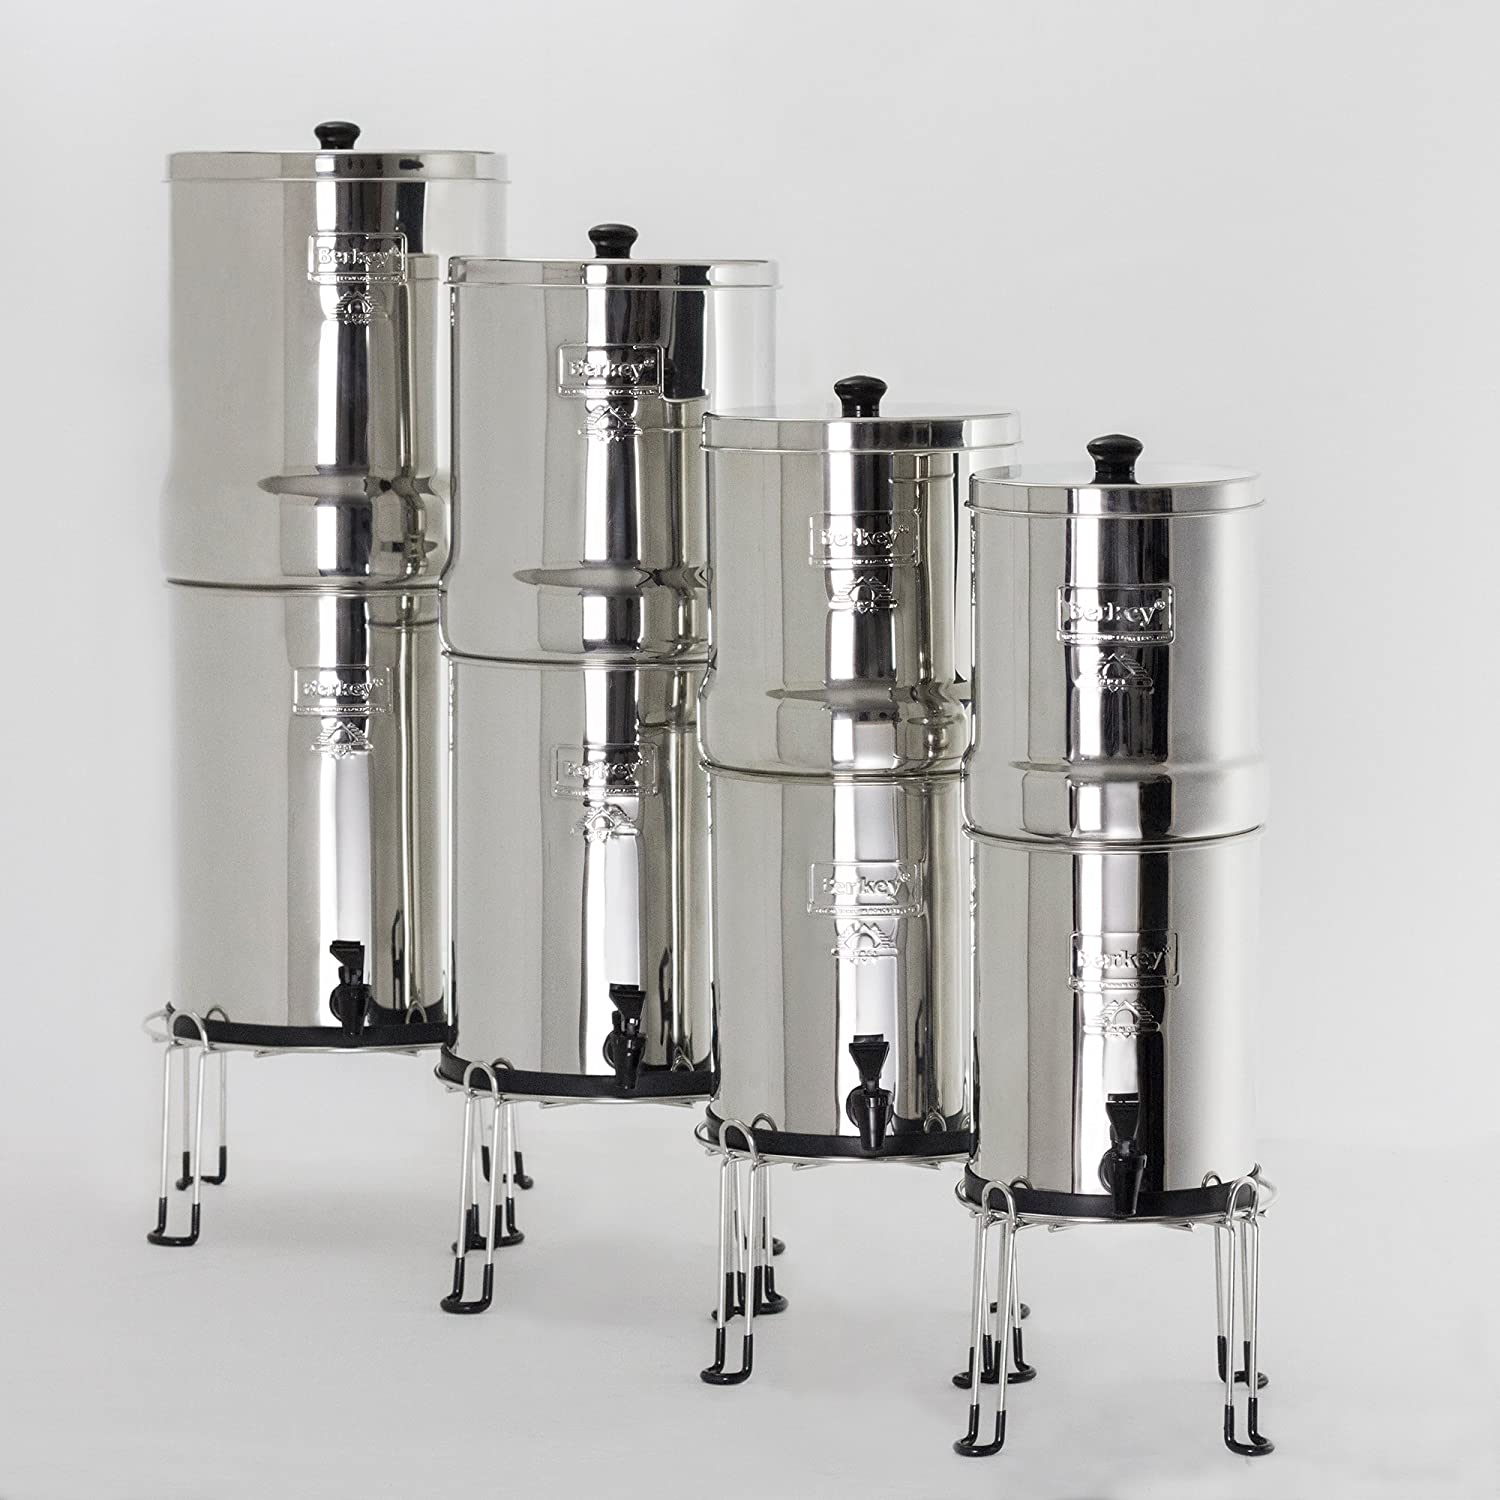 Berkey Stainless Steel Wire Stand with Rubberized Non-skid Feet for Big Berkey and Other Medium Sized Gravity Fed Water Filters by Berkey